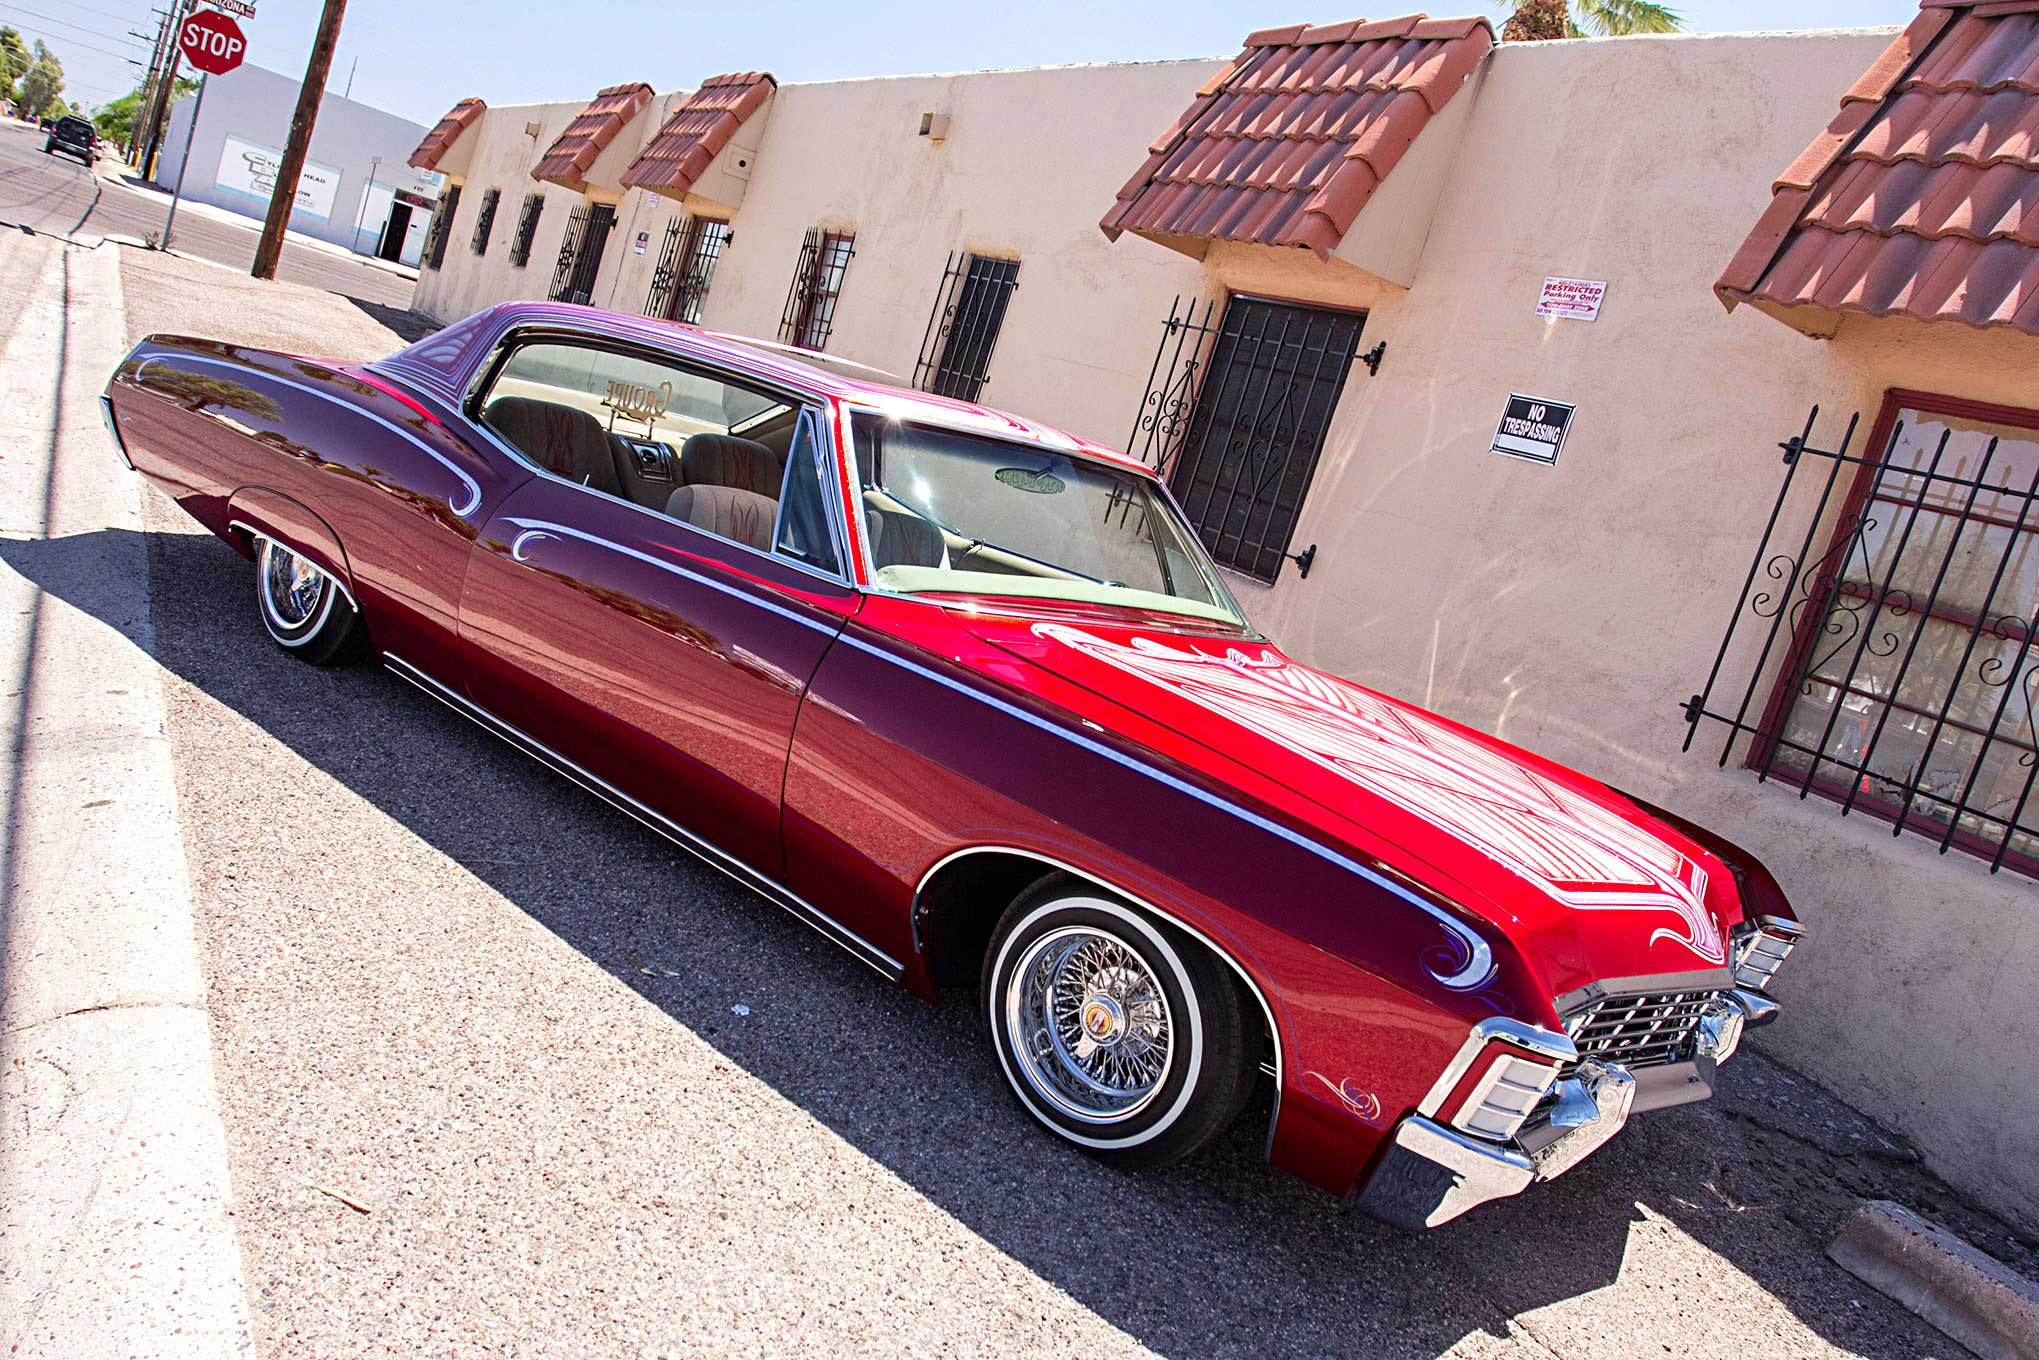 1967 Chevrolet Caprice - Trading Up